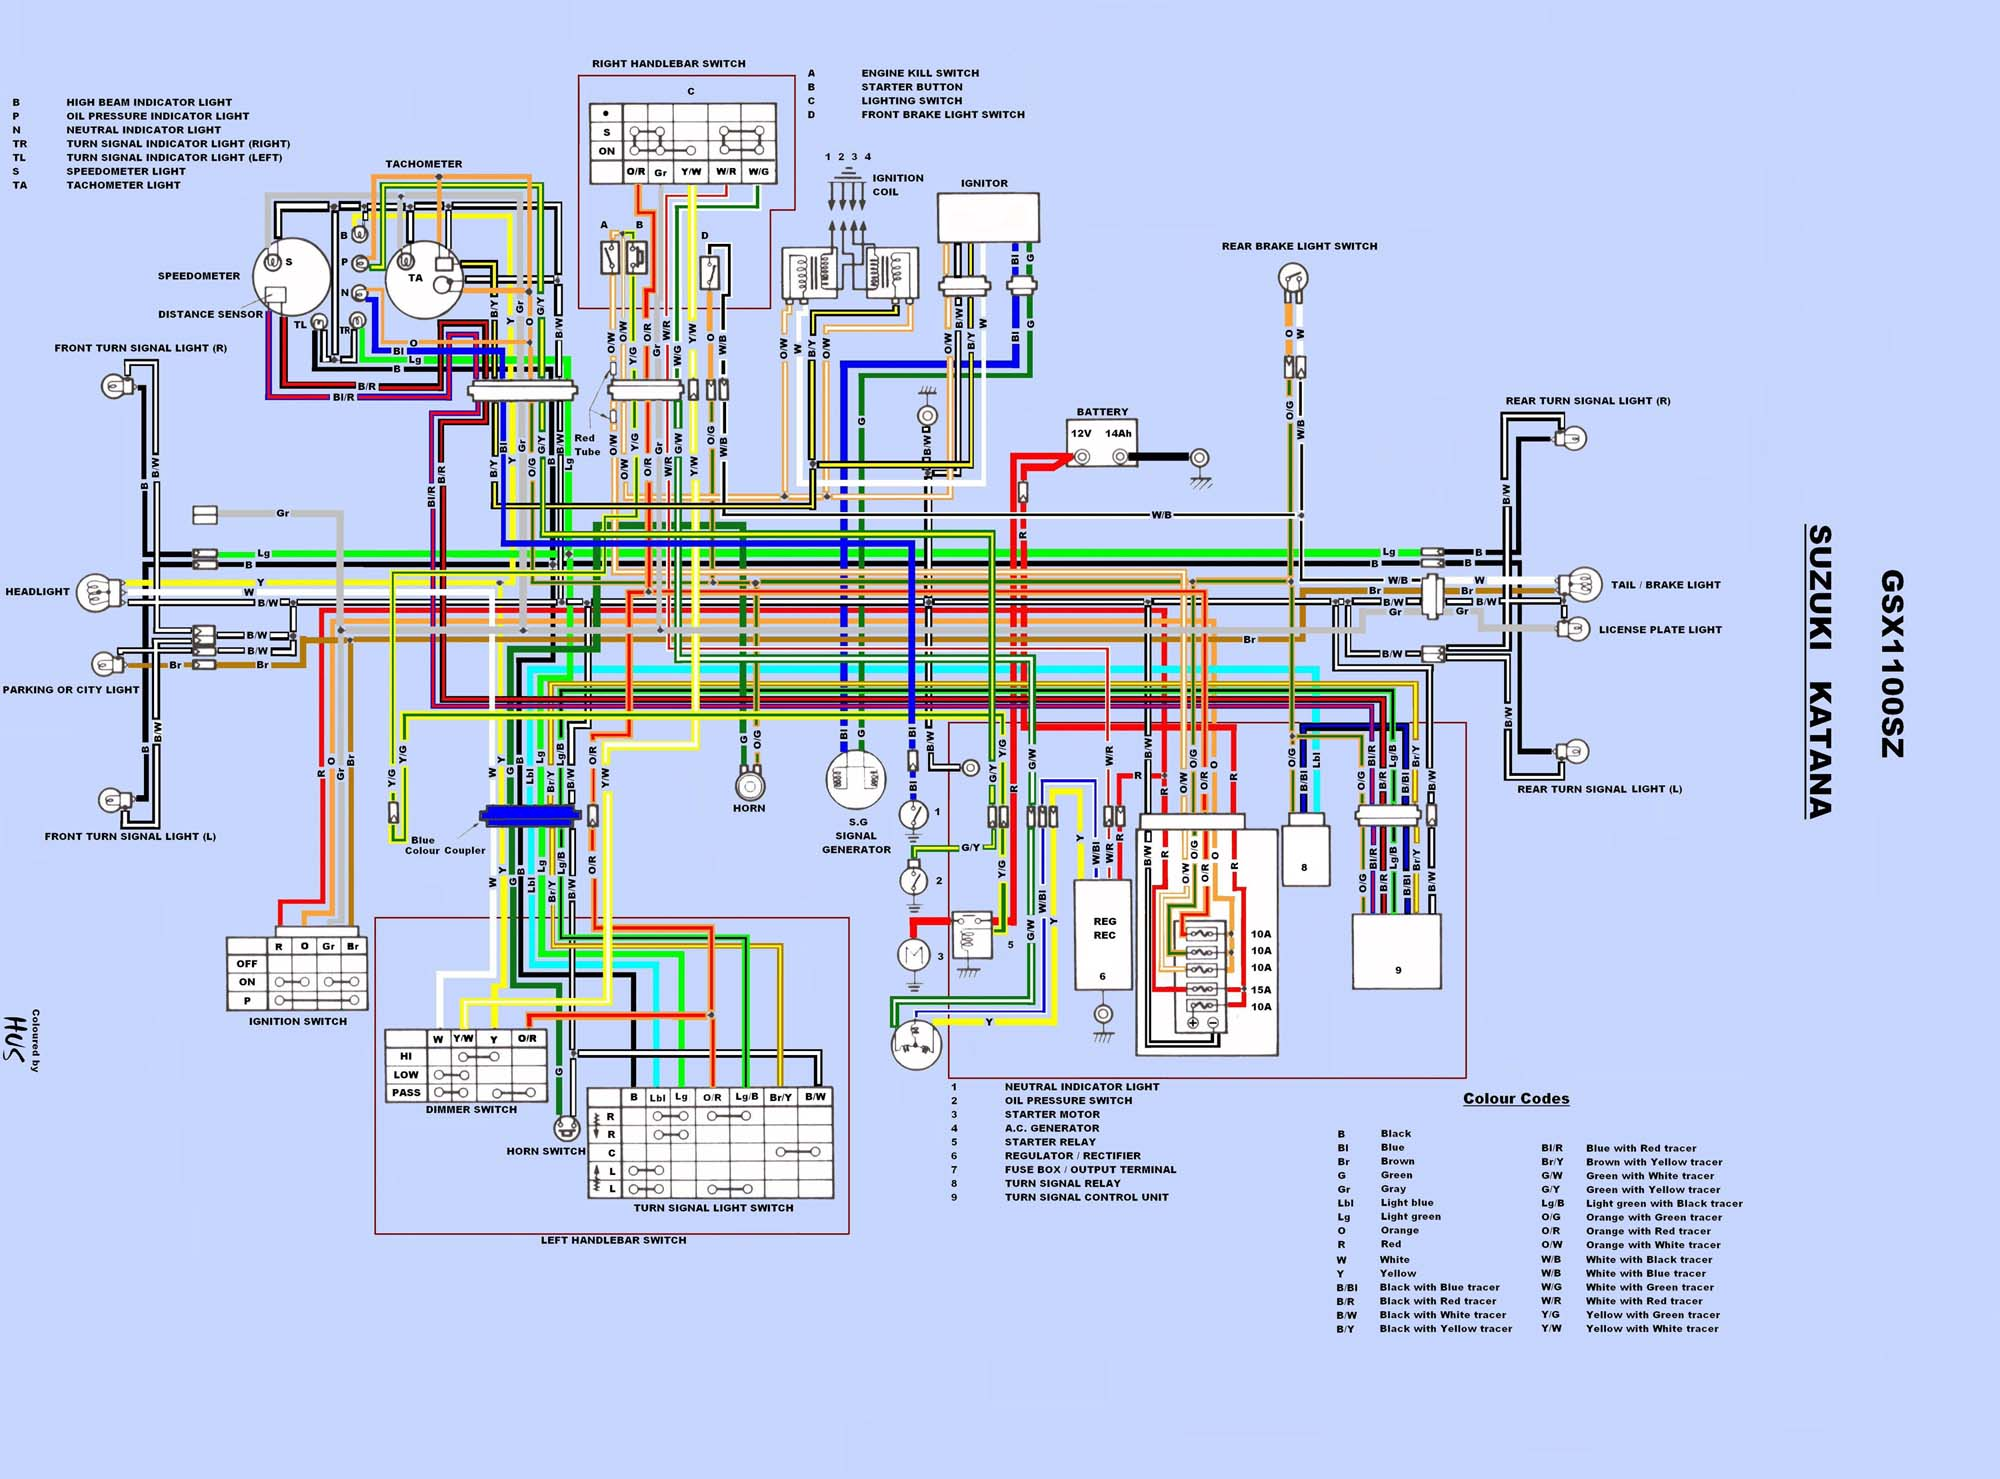 2001 Gsxr 600 Wiring Diagram - user guide of wiring diagram  Gsxr Wiring Diagram on